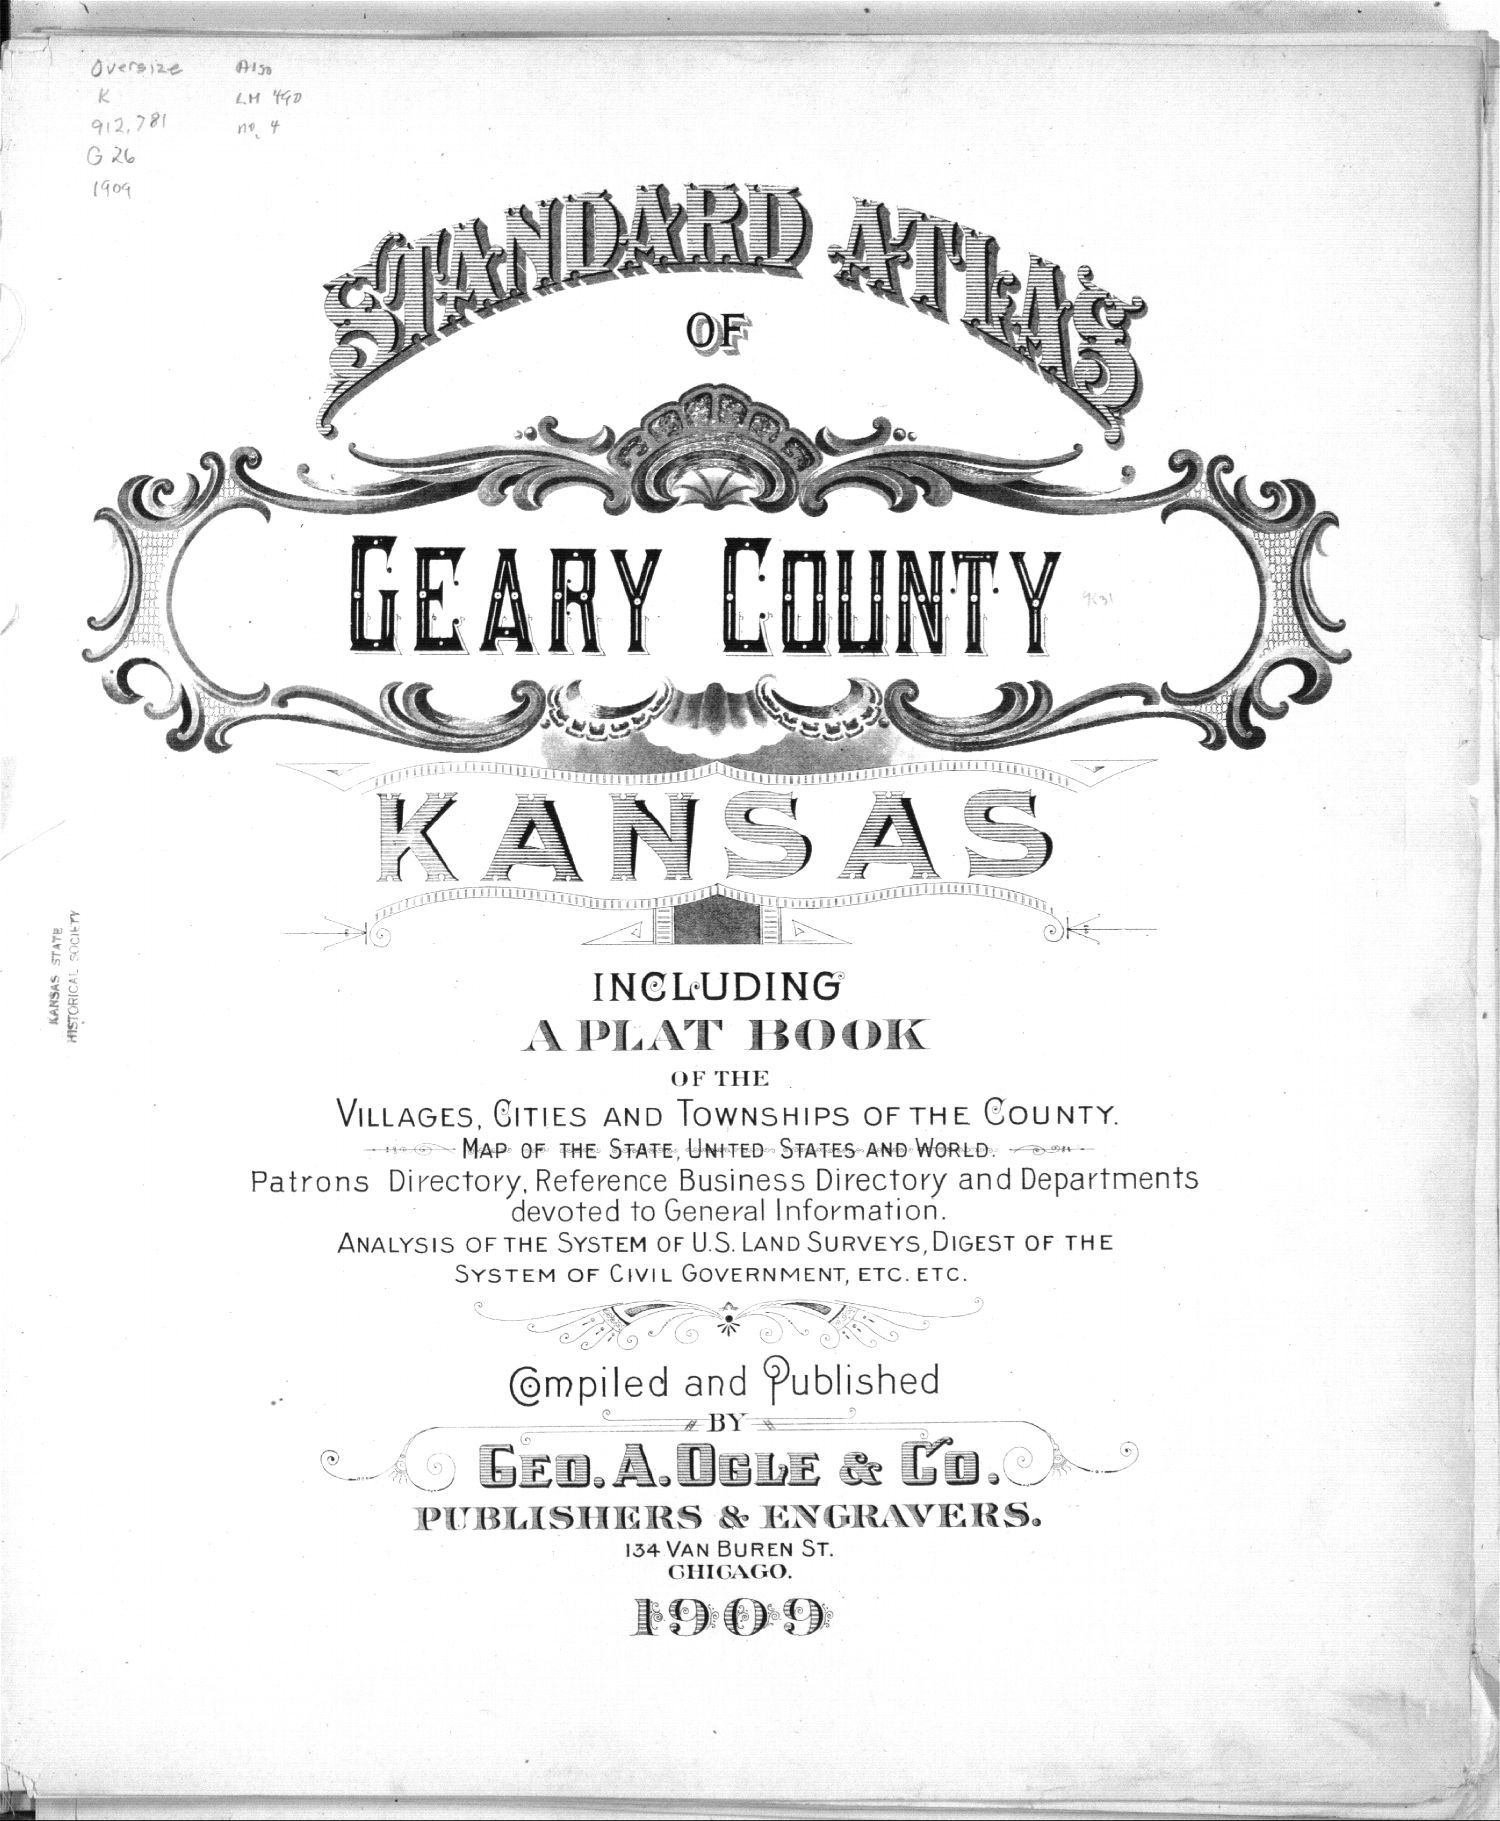 Standard atlas of Geary County, Kansas - Title Page